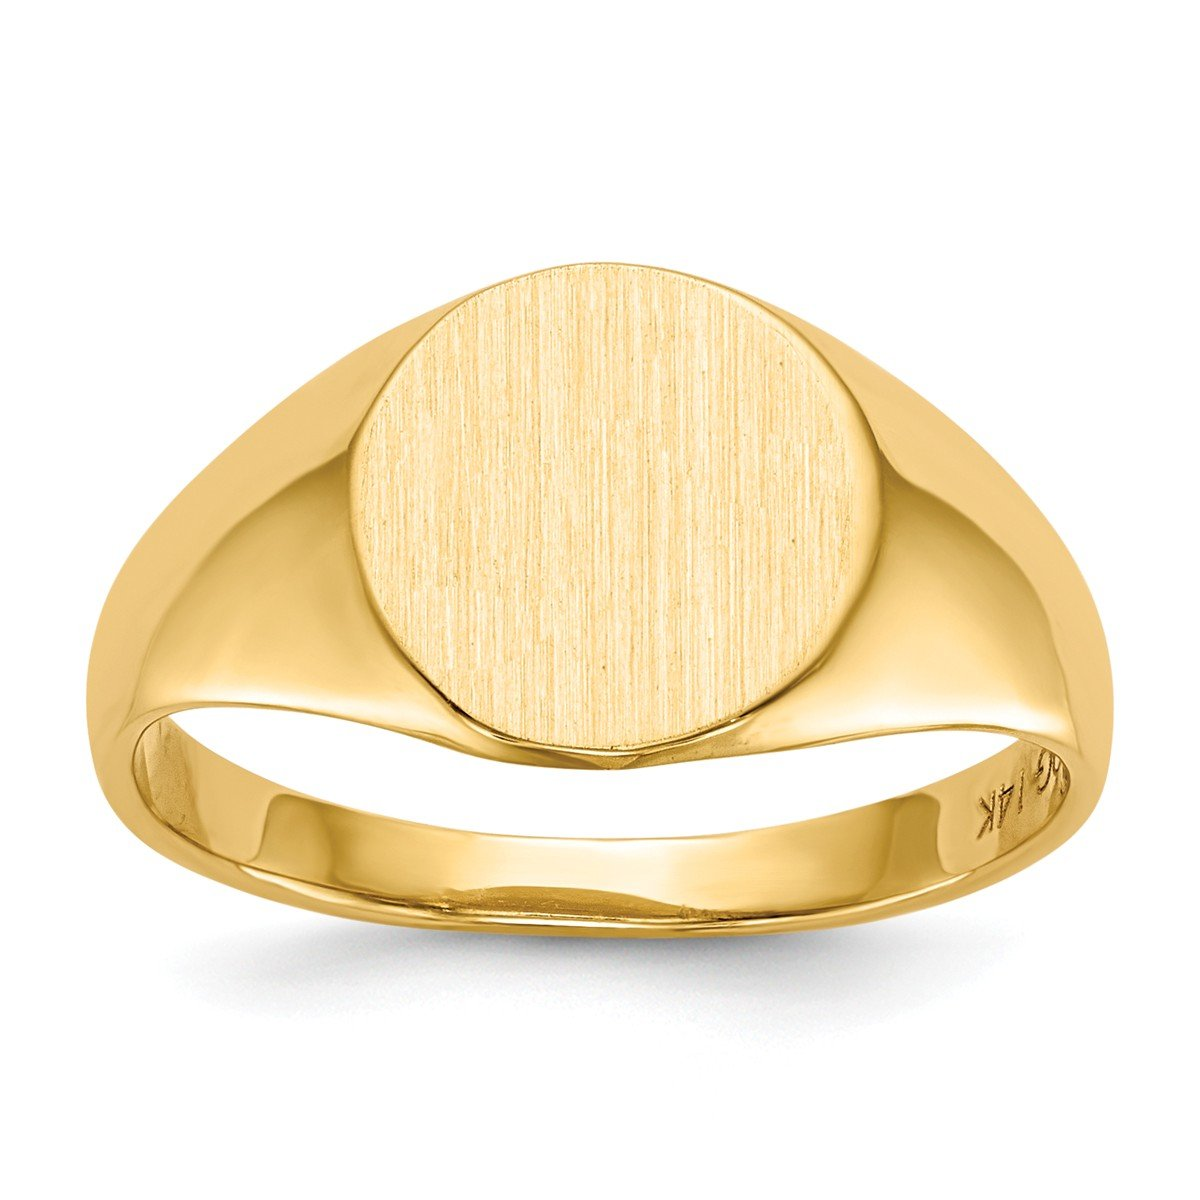 Roy Rose Jewelry 14K Yellow Gold Open Back 9.8mm Round Signet Ring Custom Personailzed with Free Engraving Available Initial or Monogram ~ Size 8 by Roy Rose Jewelry